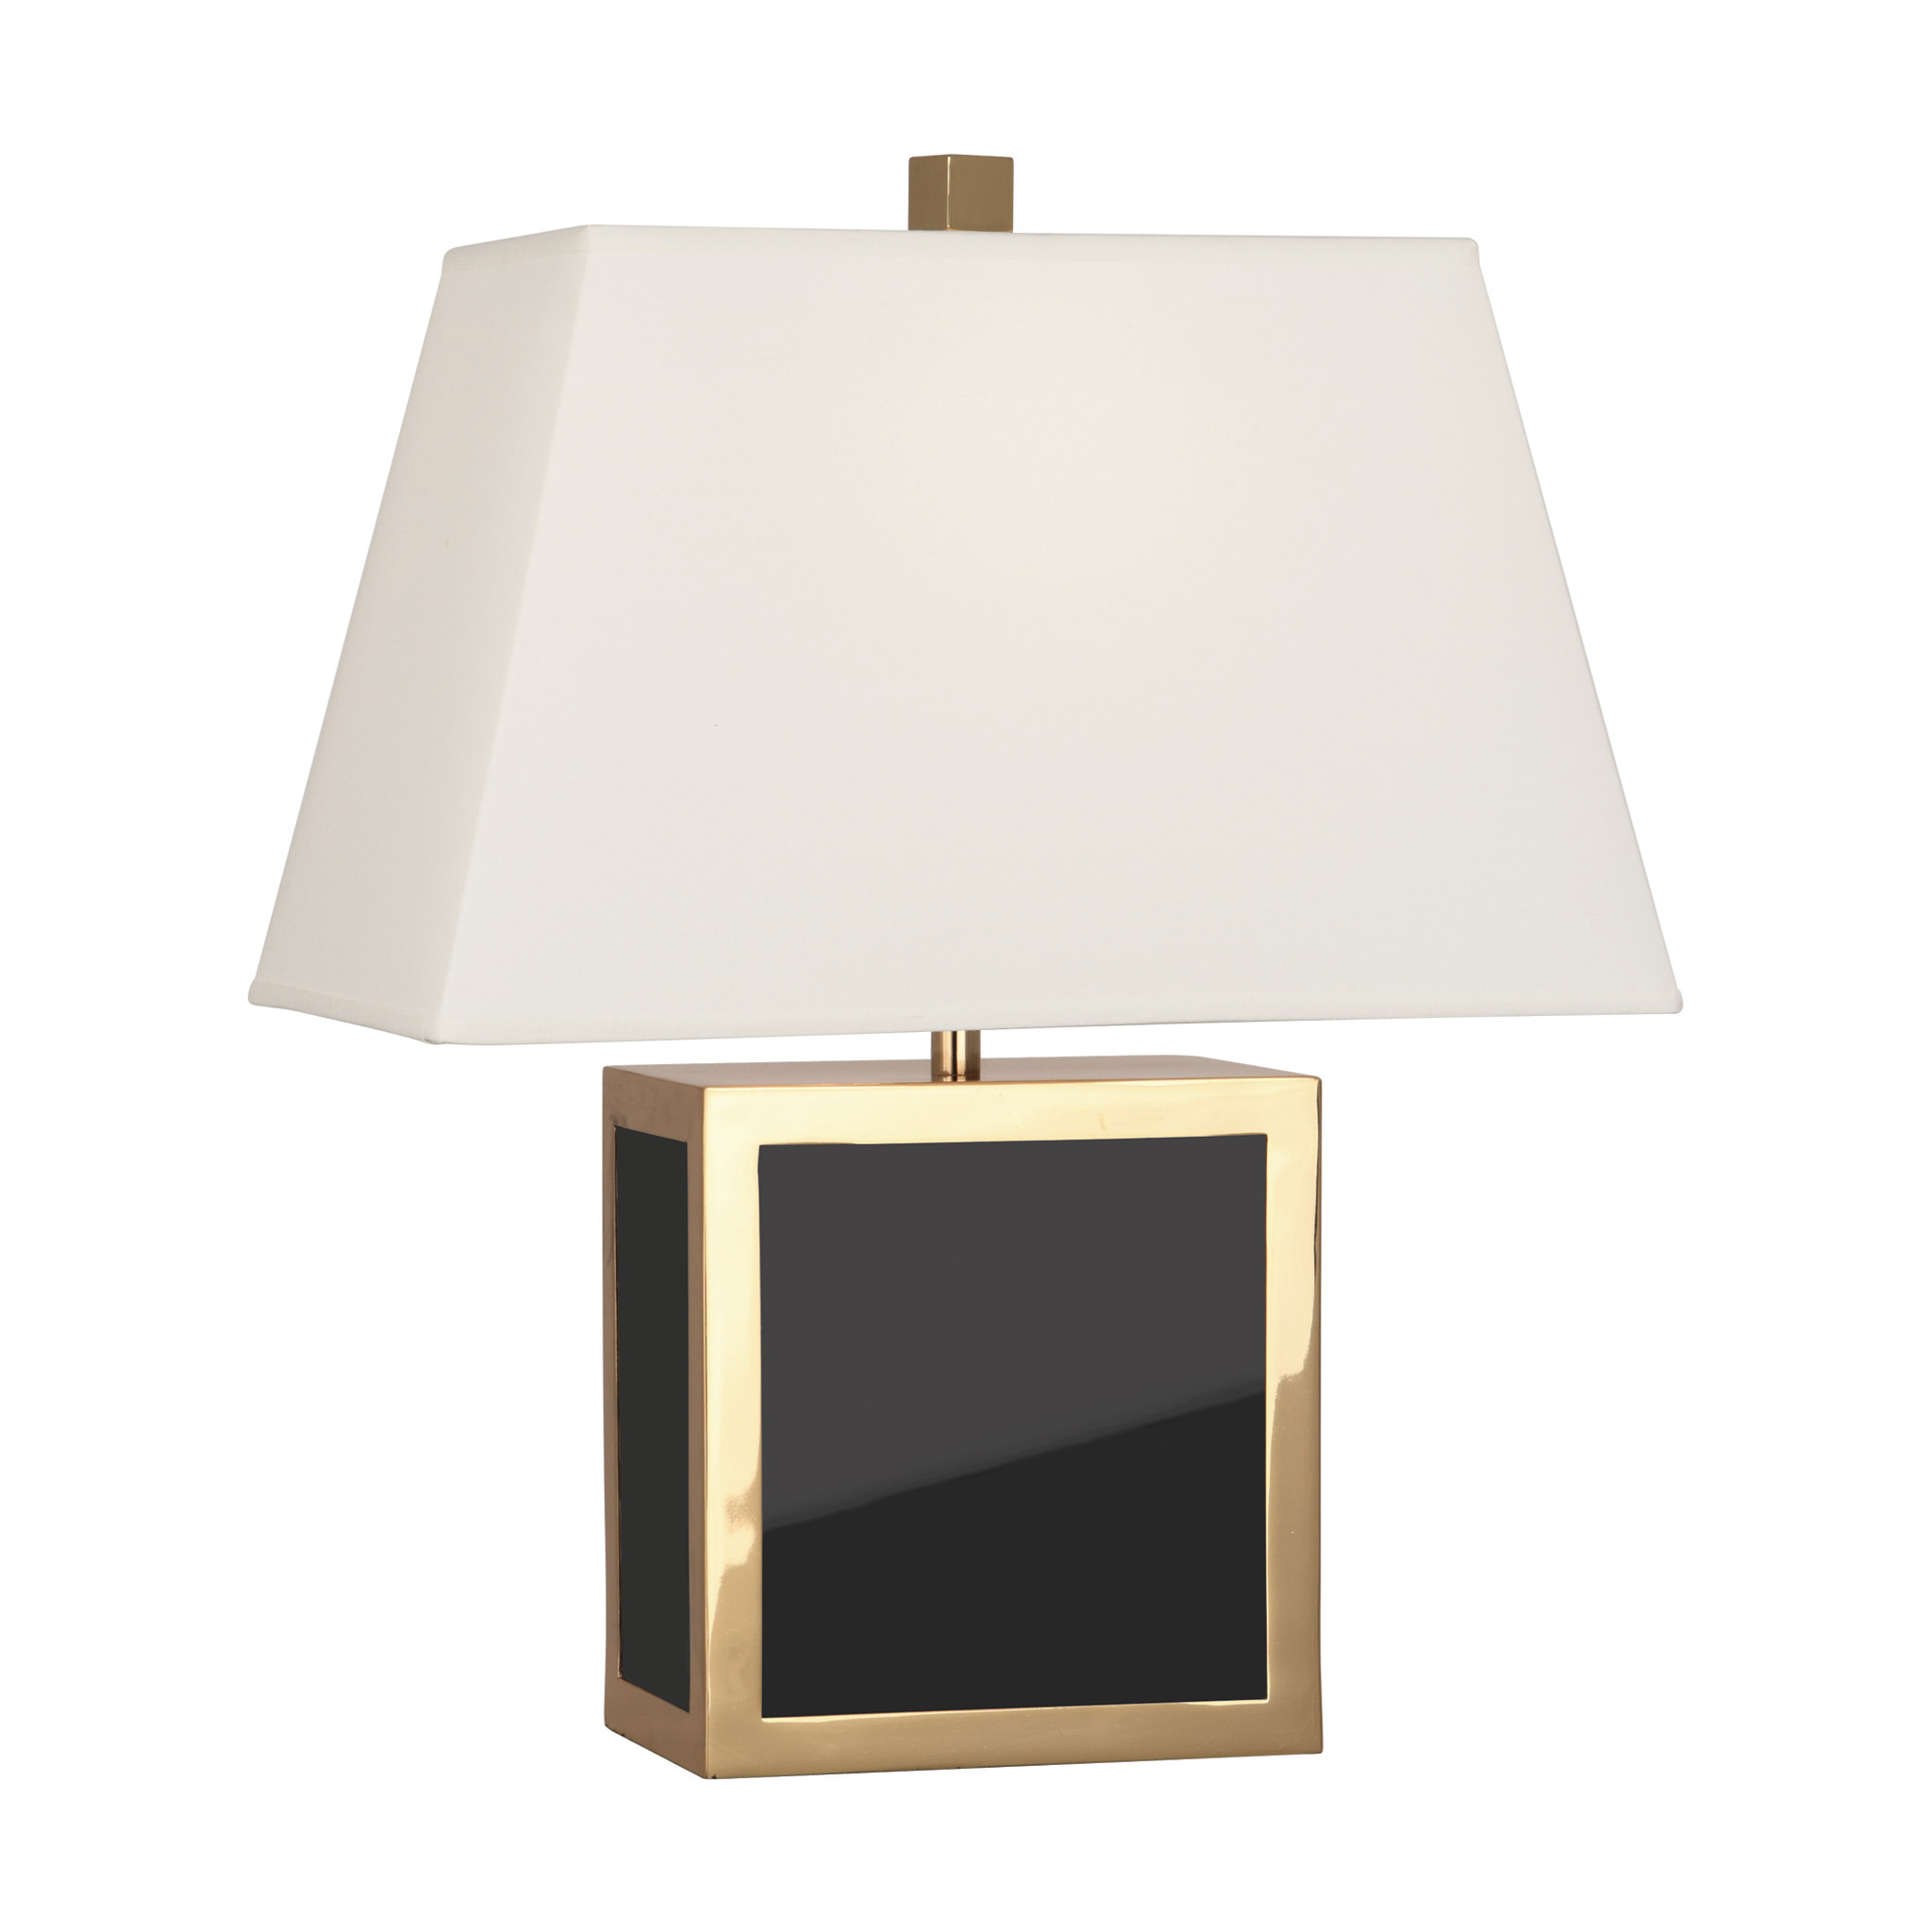 barcelona black accent lamp modern table lamps jonathan adler within tall glass tables living room pub style multi color coffee mirrored foyer pier old barn door wood pedestal